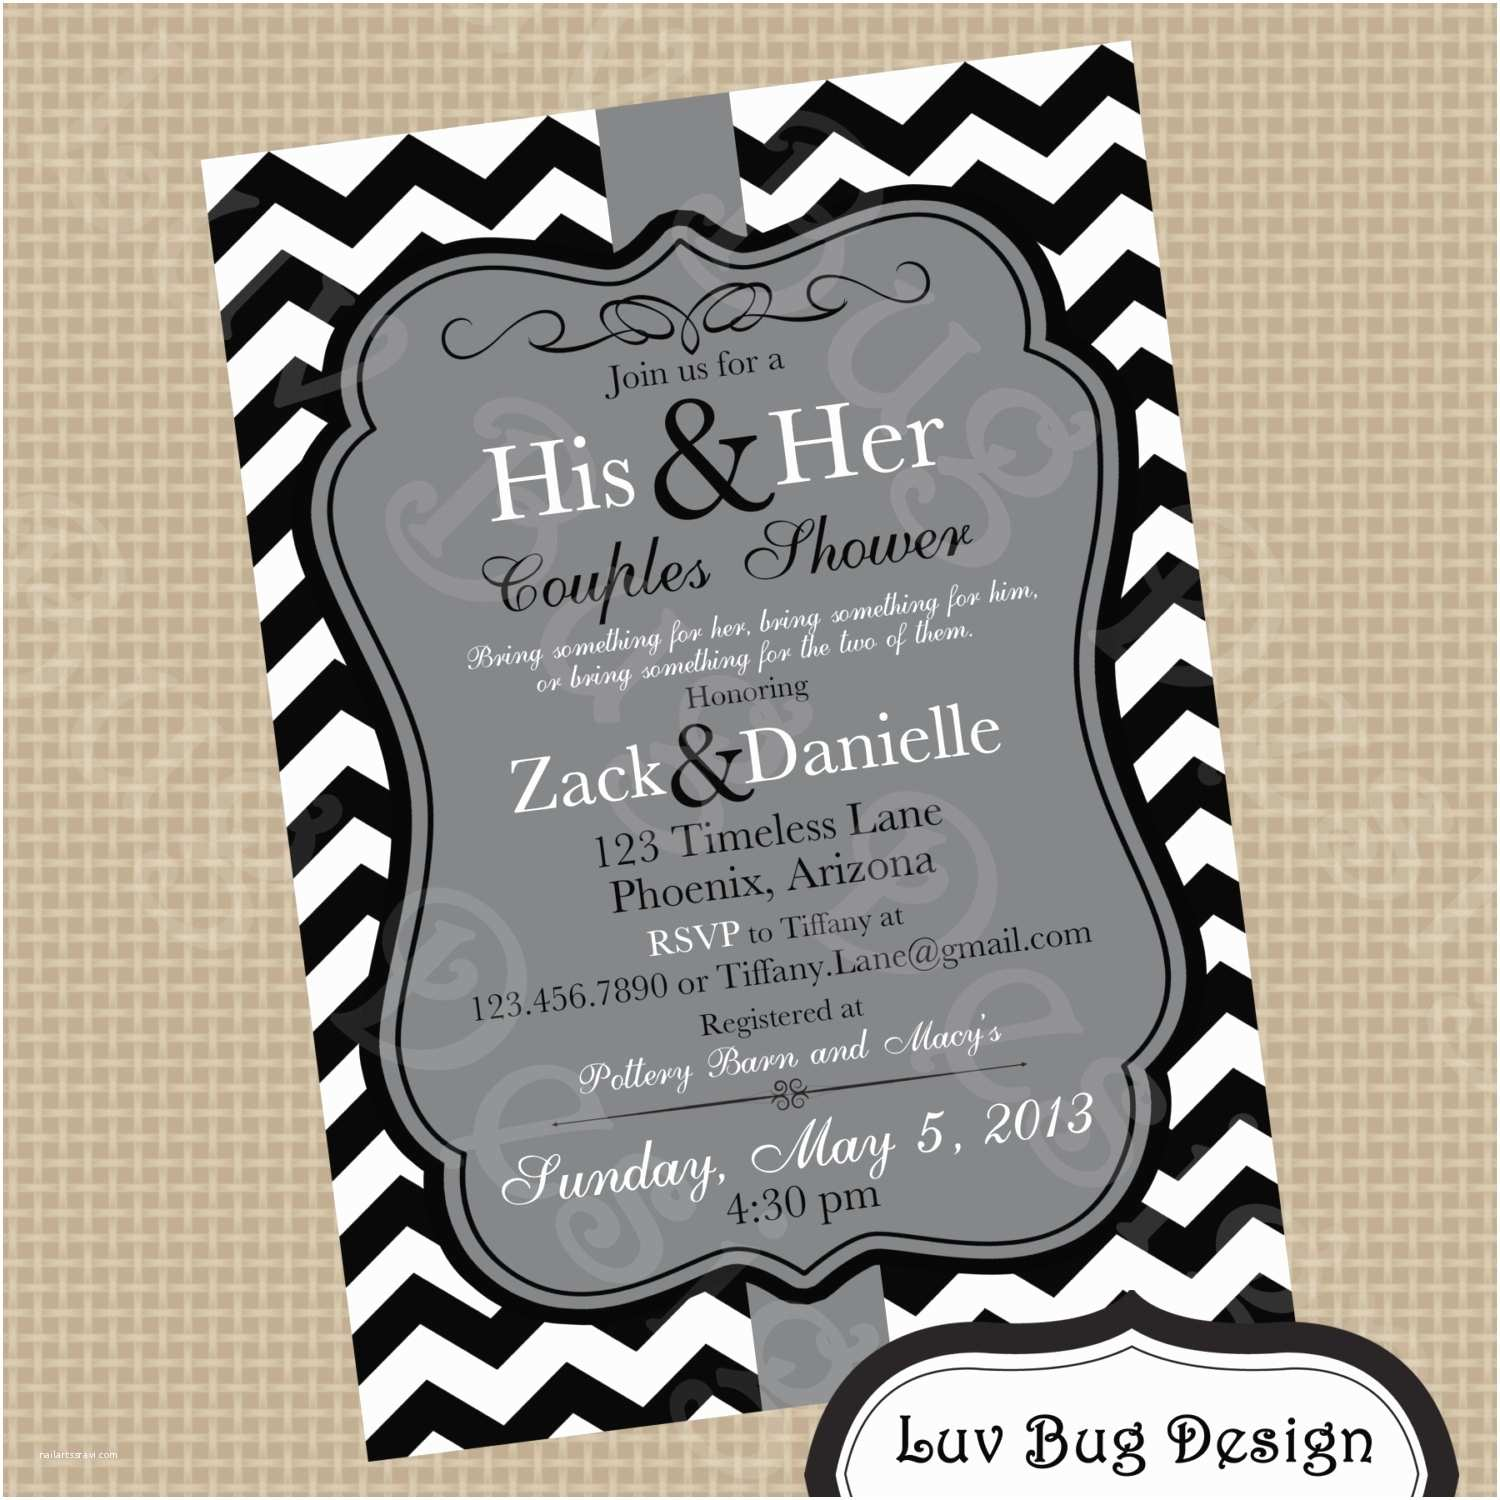 Coed Baby Shower Invitations Couples Baby Shower Invitation Wording Template Resume